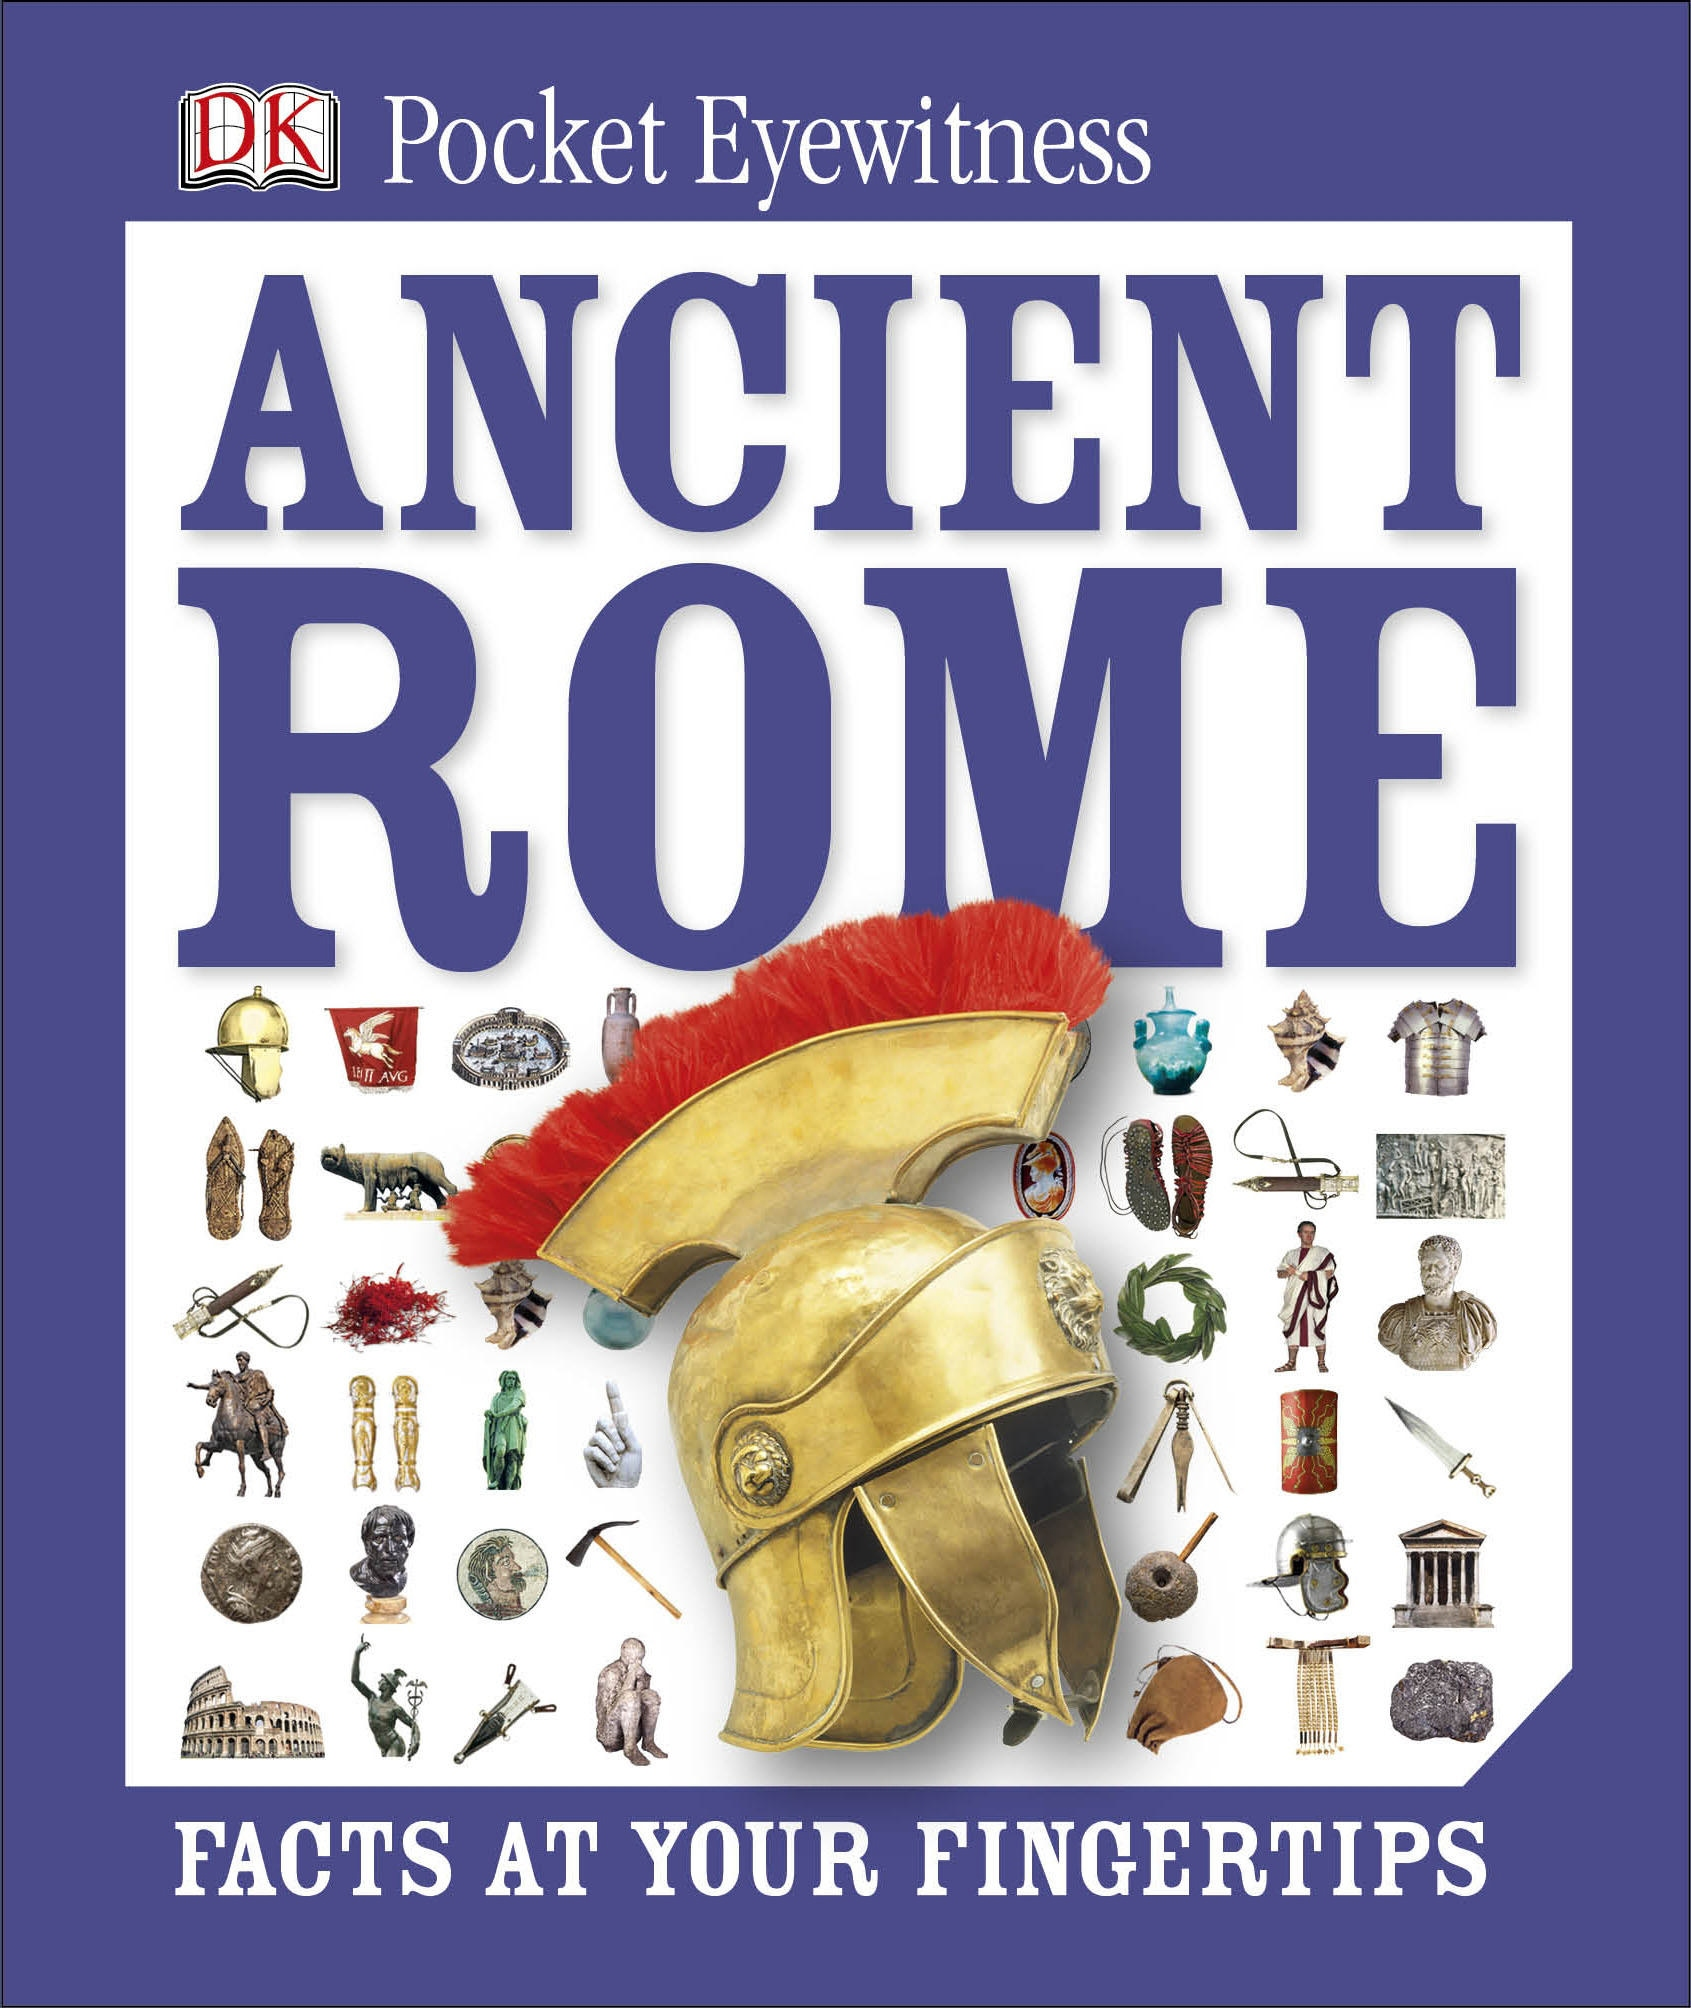 Cover Art for DK Pocket Eyewitness: Ancient Rome, ISBN: 9781409343646